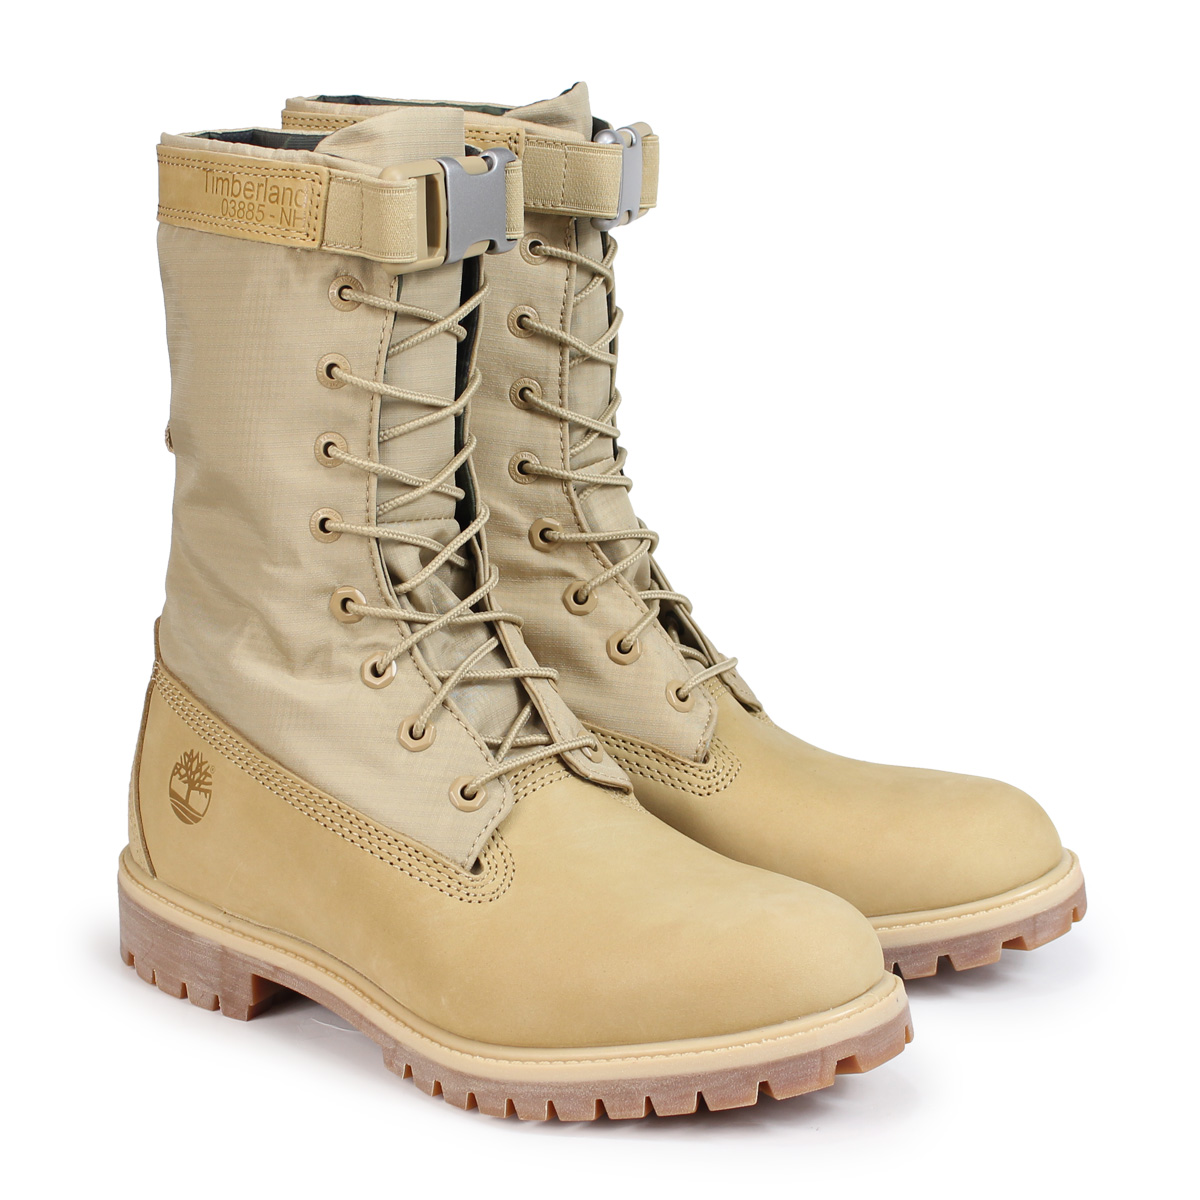 Allsports 6 Inches Of Timberland 6 Inch Premium Gaiter Boots